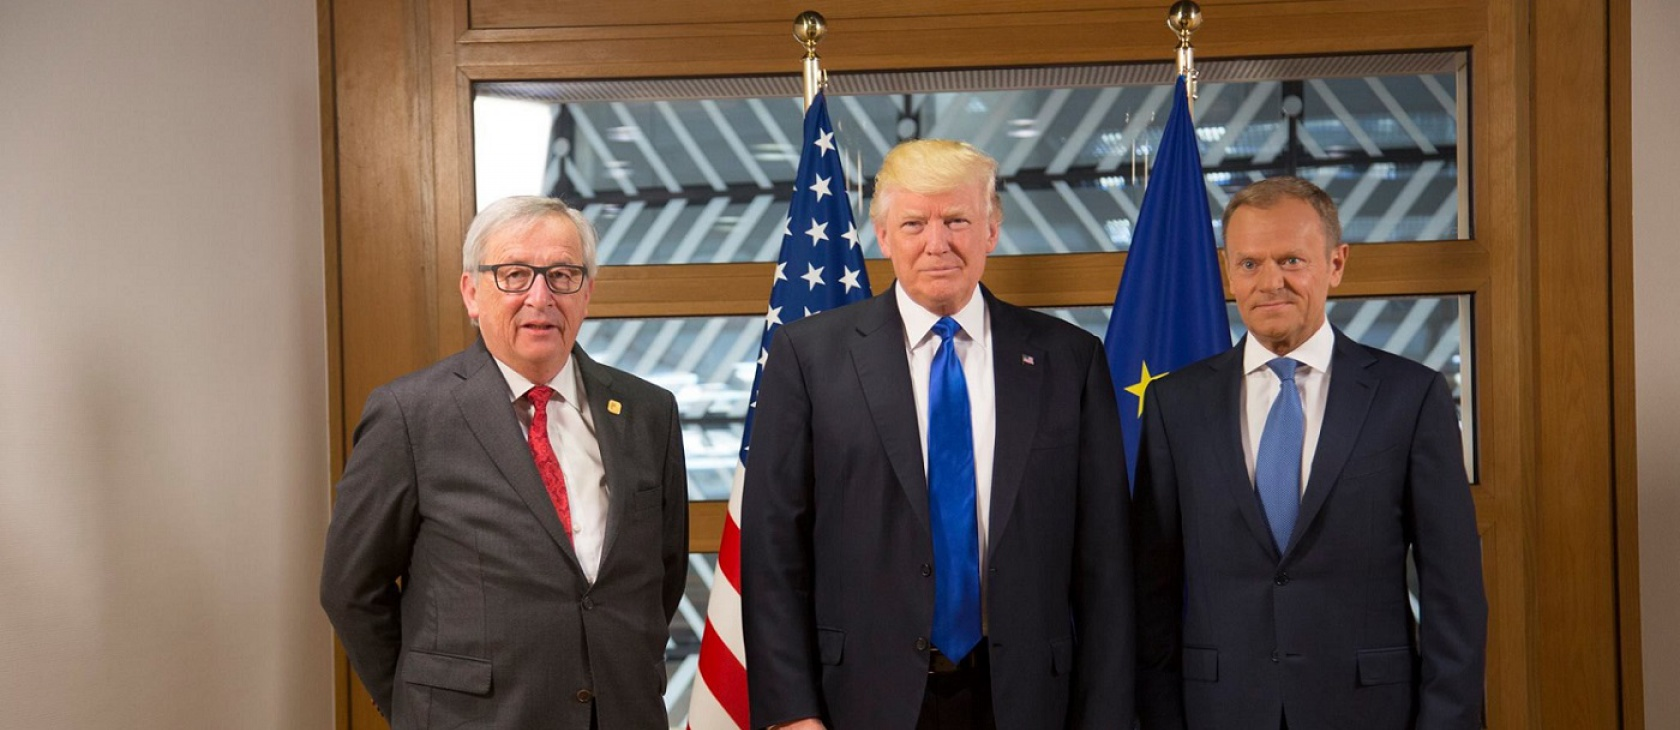 A rift with Europe